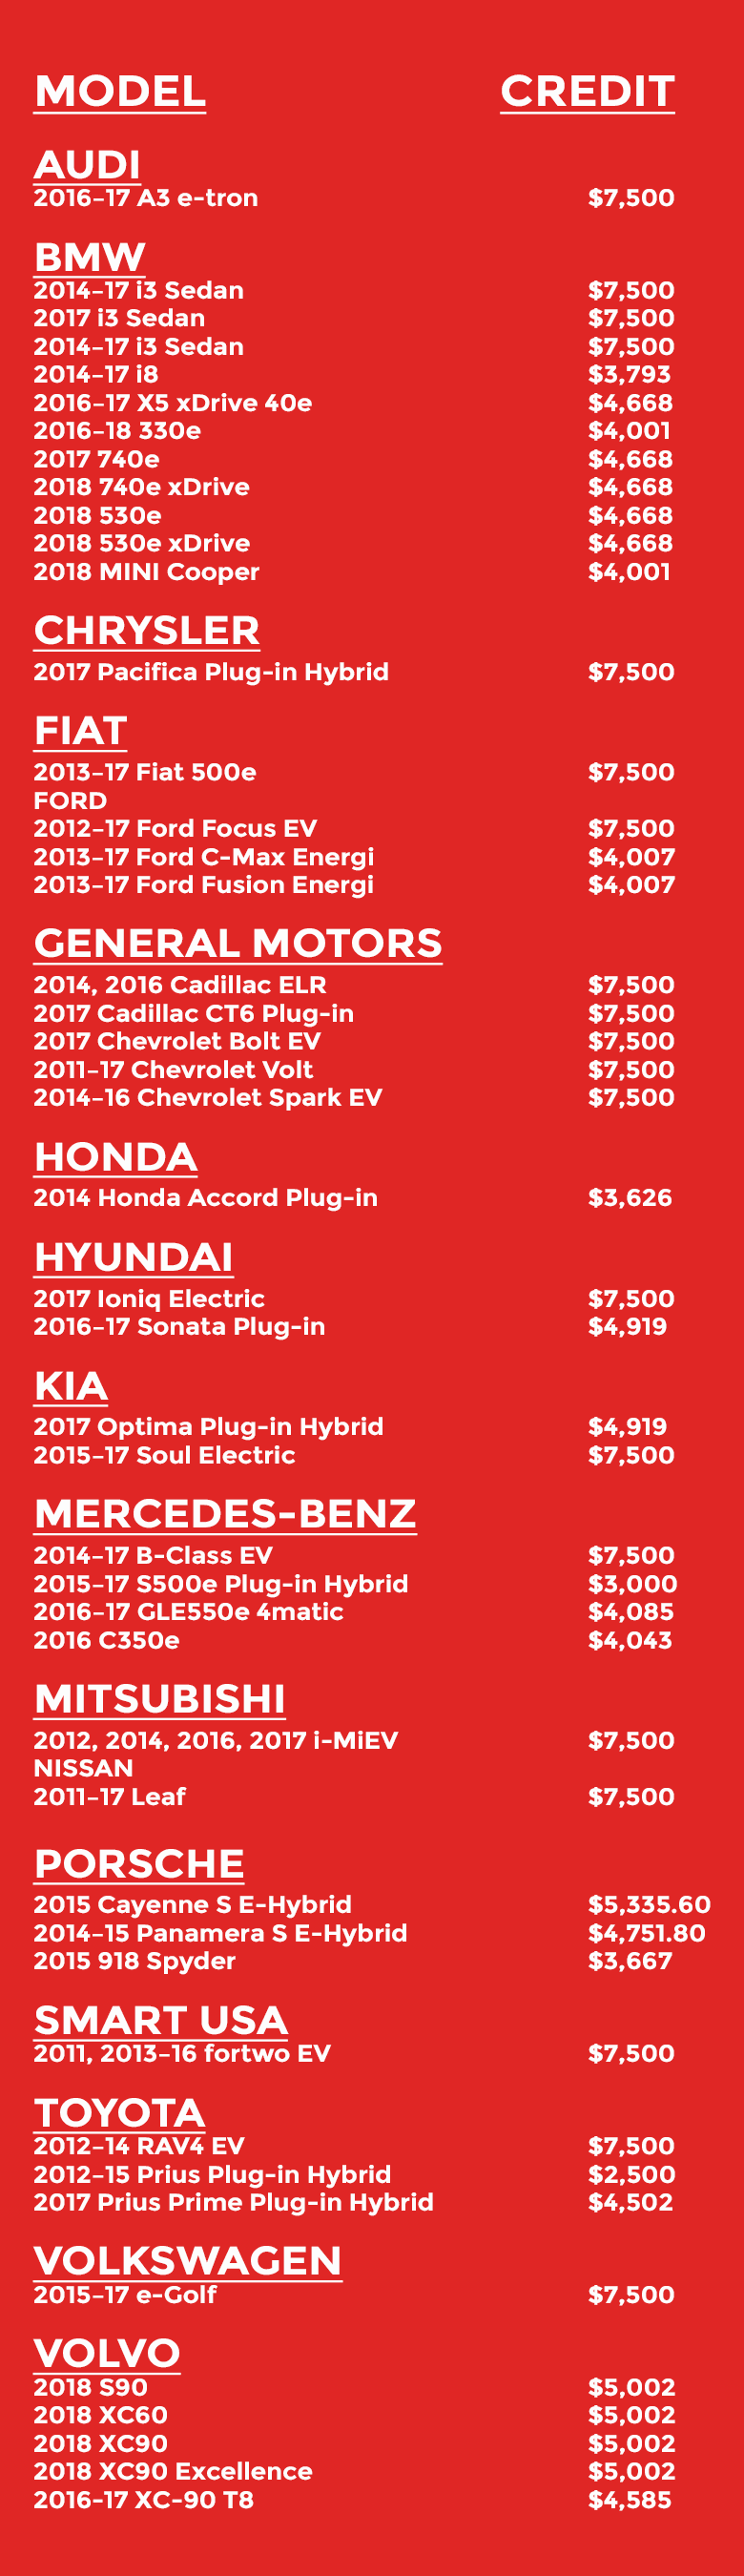 EV Model Incentive List for Auto Dealerships